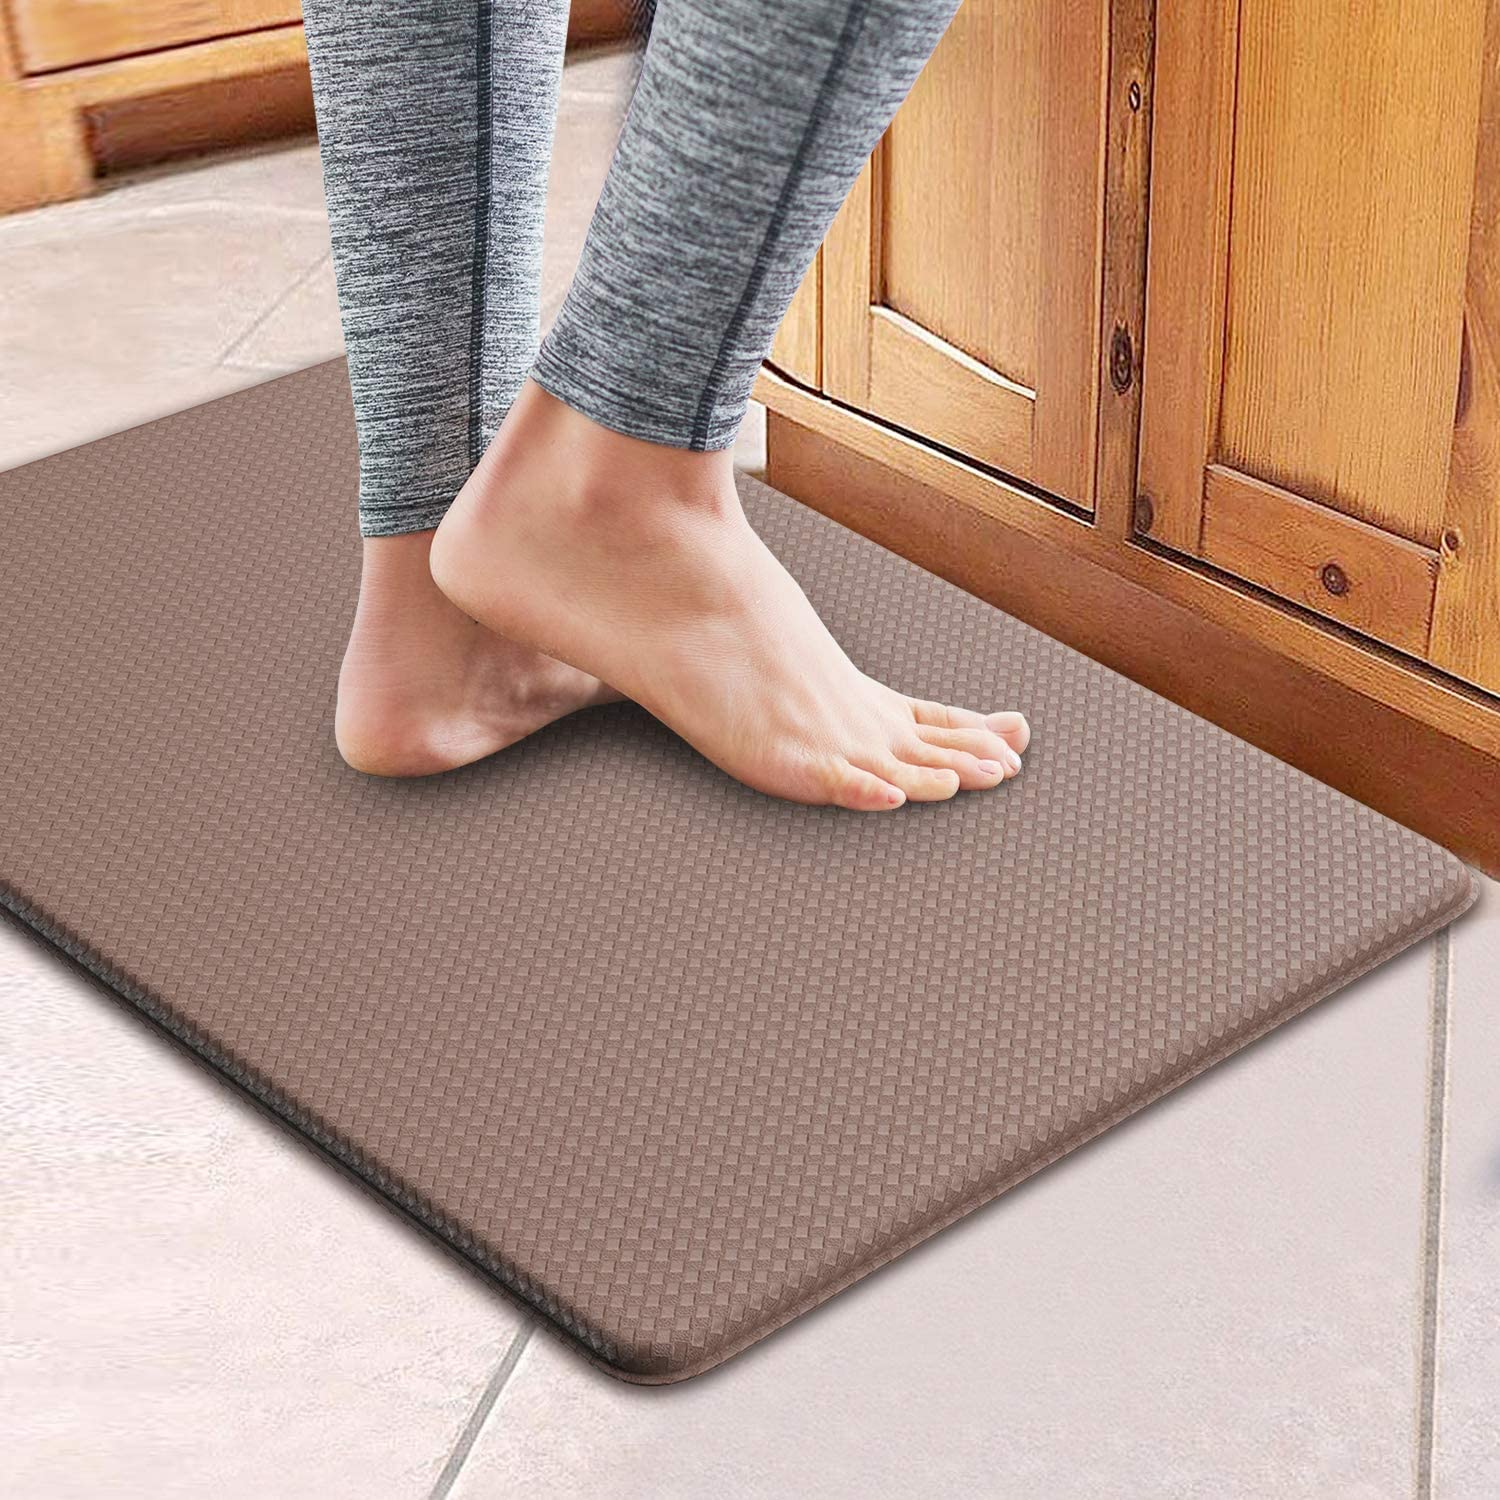 Anti-Fatigue High Density Mat - Great for kitchens, laundry rooms or anywhere you stand and want to ease the pain on your joints from the hard floors! - SHIPS FREE!